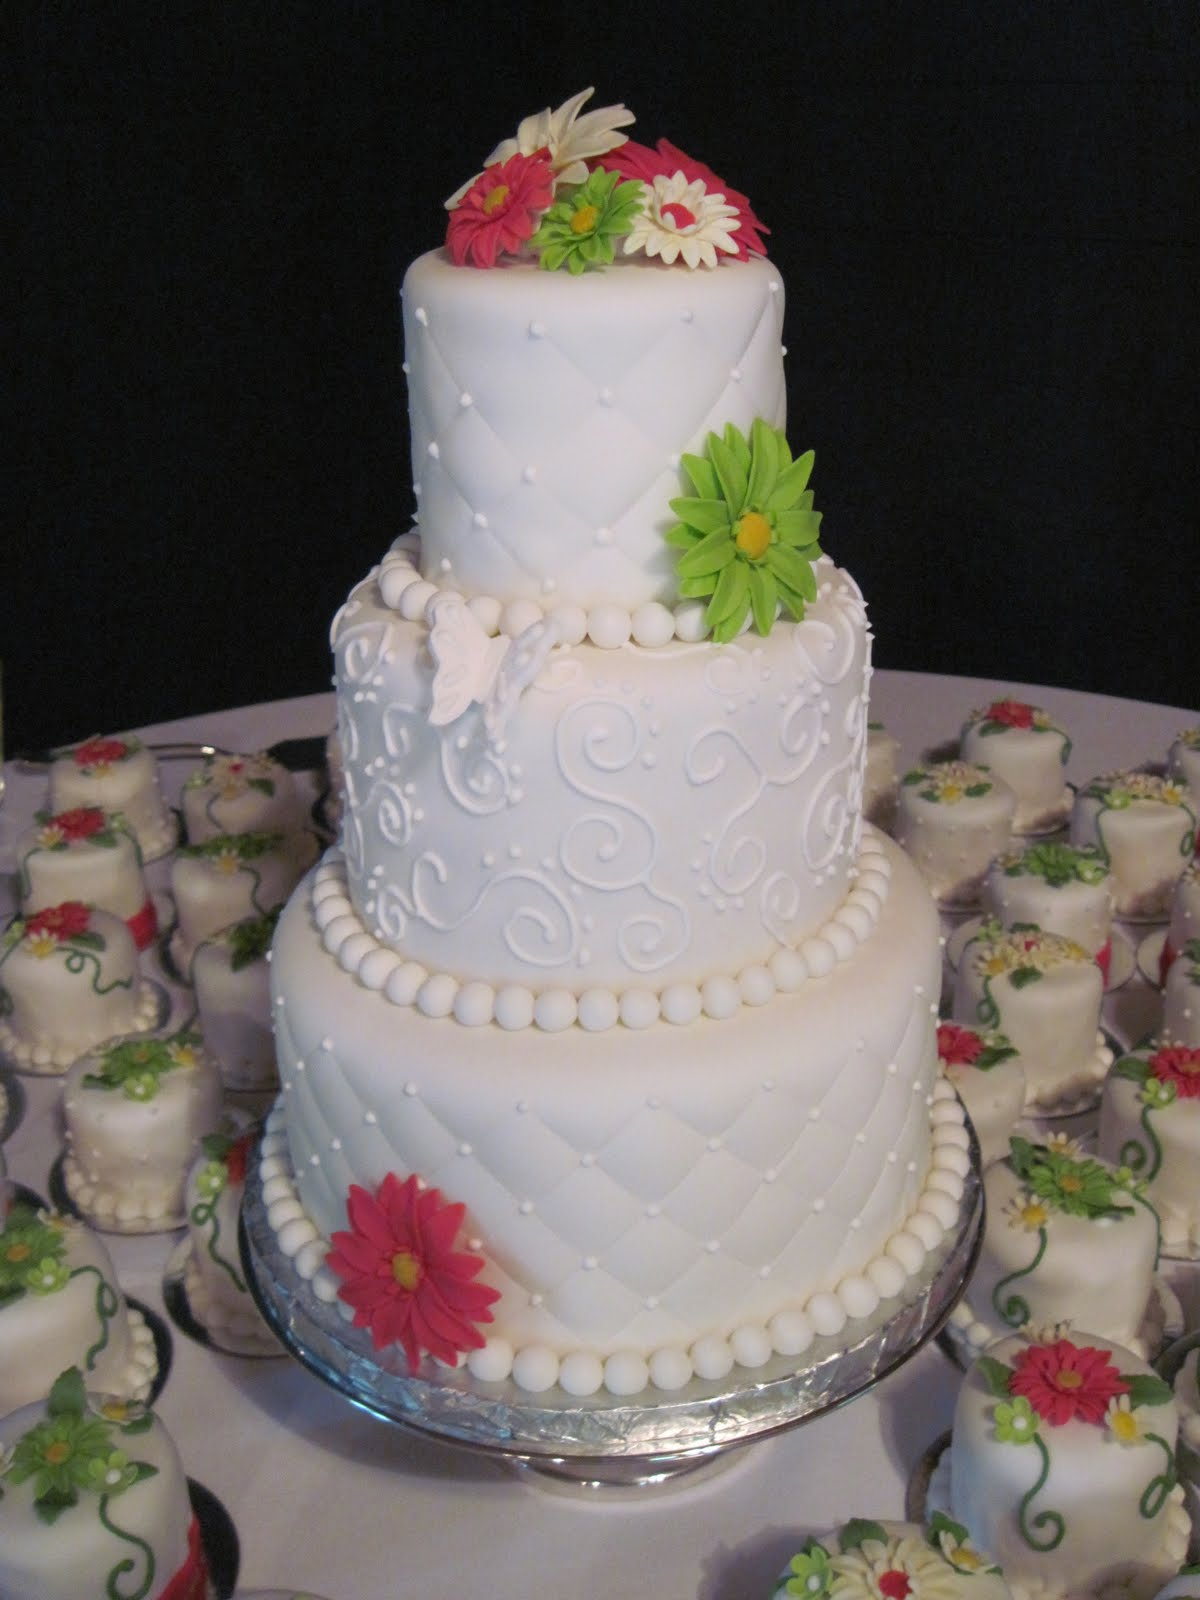 Heather s Cakes and Confections May 2011